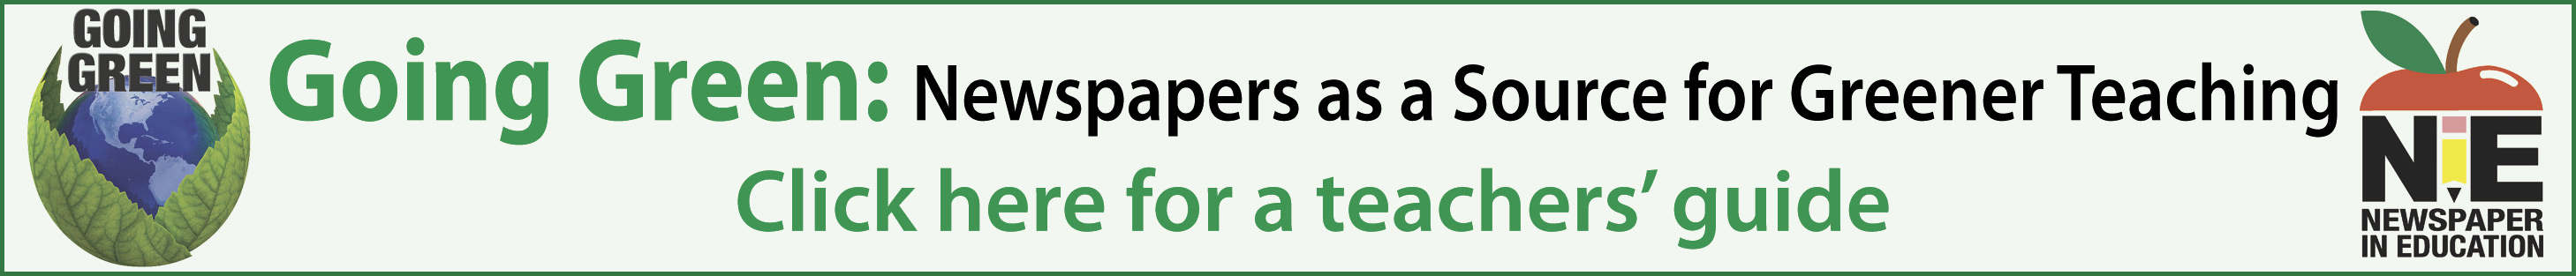 Newspapers as a Source for Greener Teaching